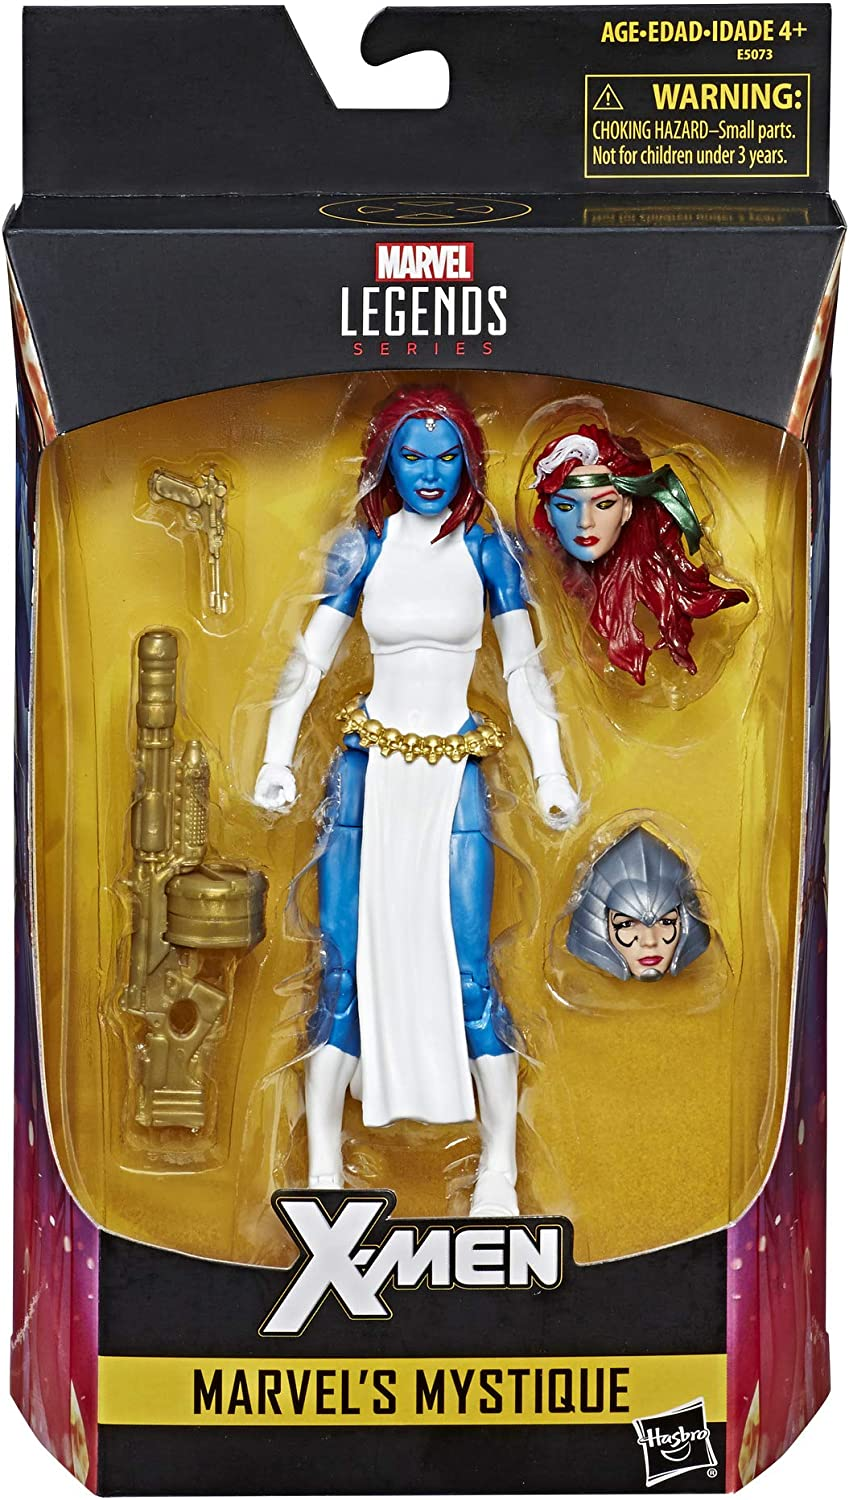 MARVEL LEGENDS X-MEN MYSTIQUE WALGREENS EXCLUSIVE IN HAND FREE SHIPPING